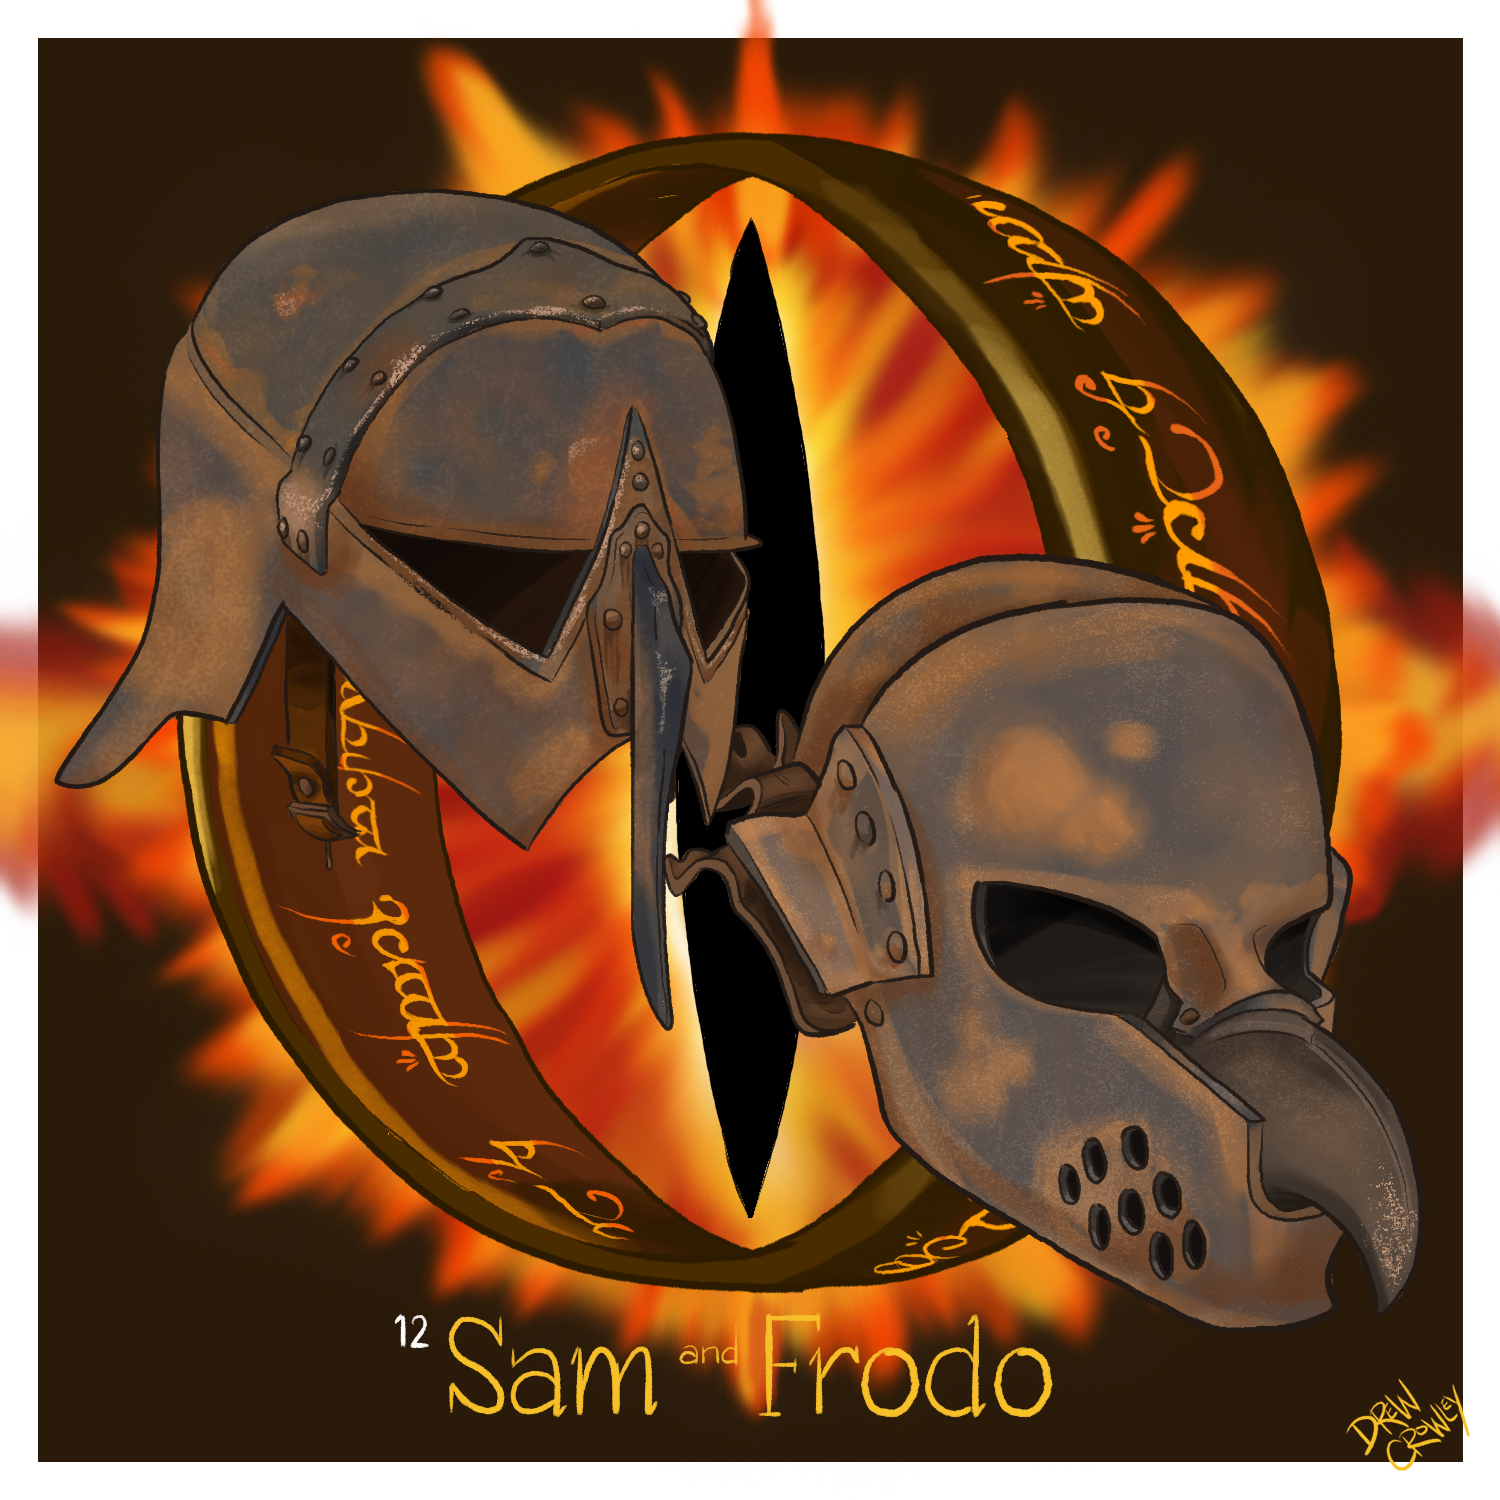 chromedome-series 02-12-sam and frodo.png